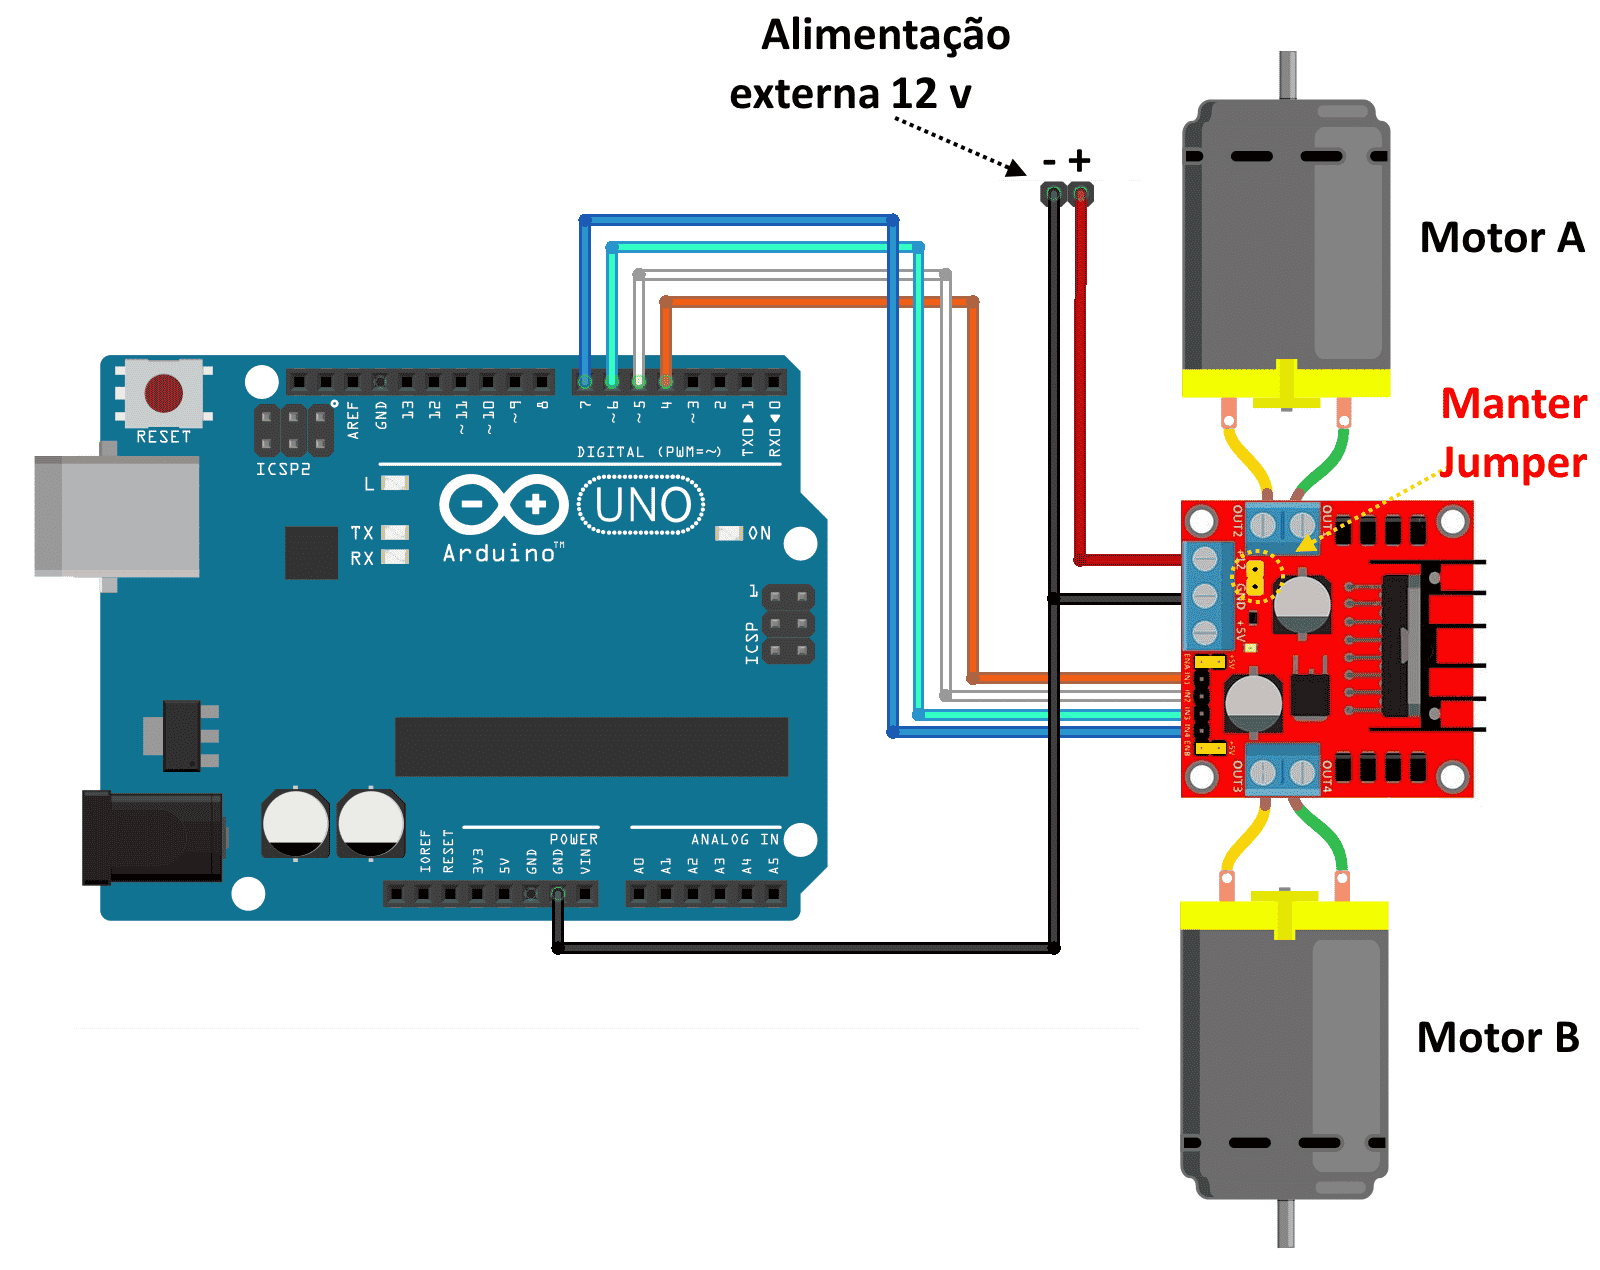 arduino motor shield r3 schematic with Motor Dc Arduino Ponte H L298n on Lectronic likewise 81 together with Motorsteuerung Eines Schrittmotors Stepper Motor as well GRBL Pinout Arduino Nano V30 together with Tidigino The Arduino Based Gsm Remote Control.